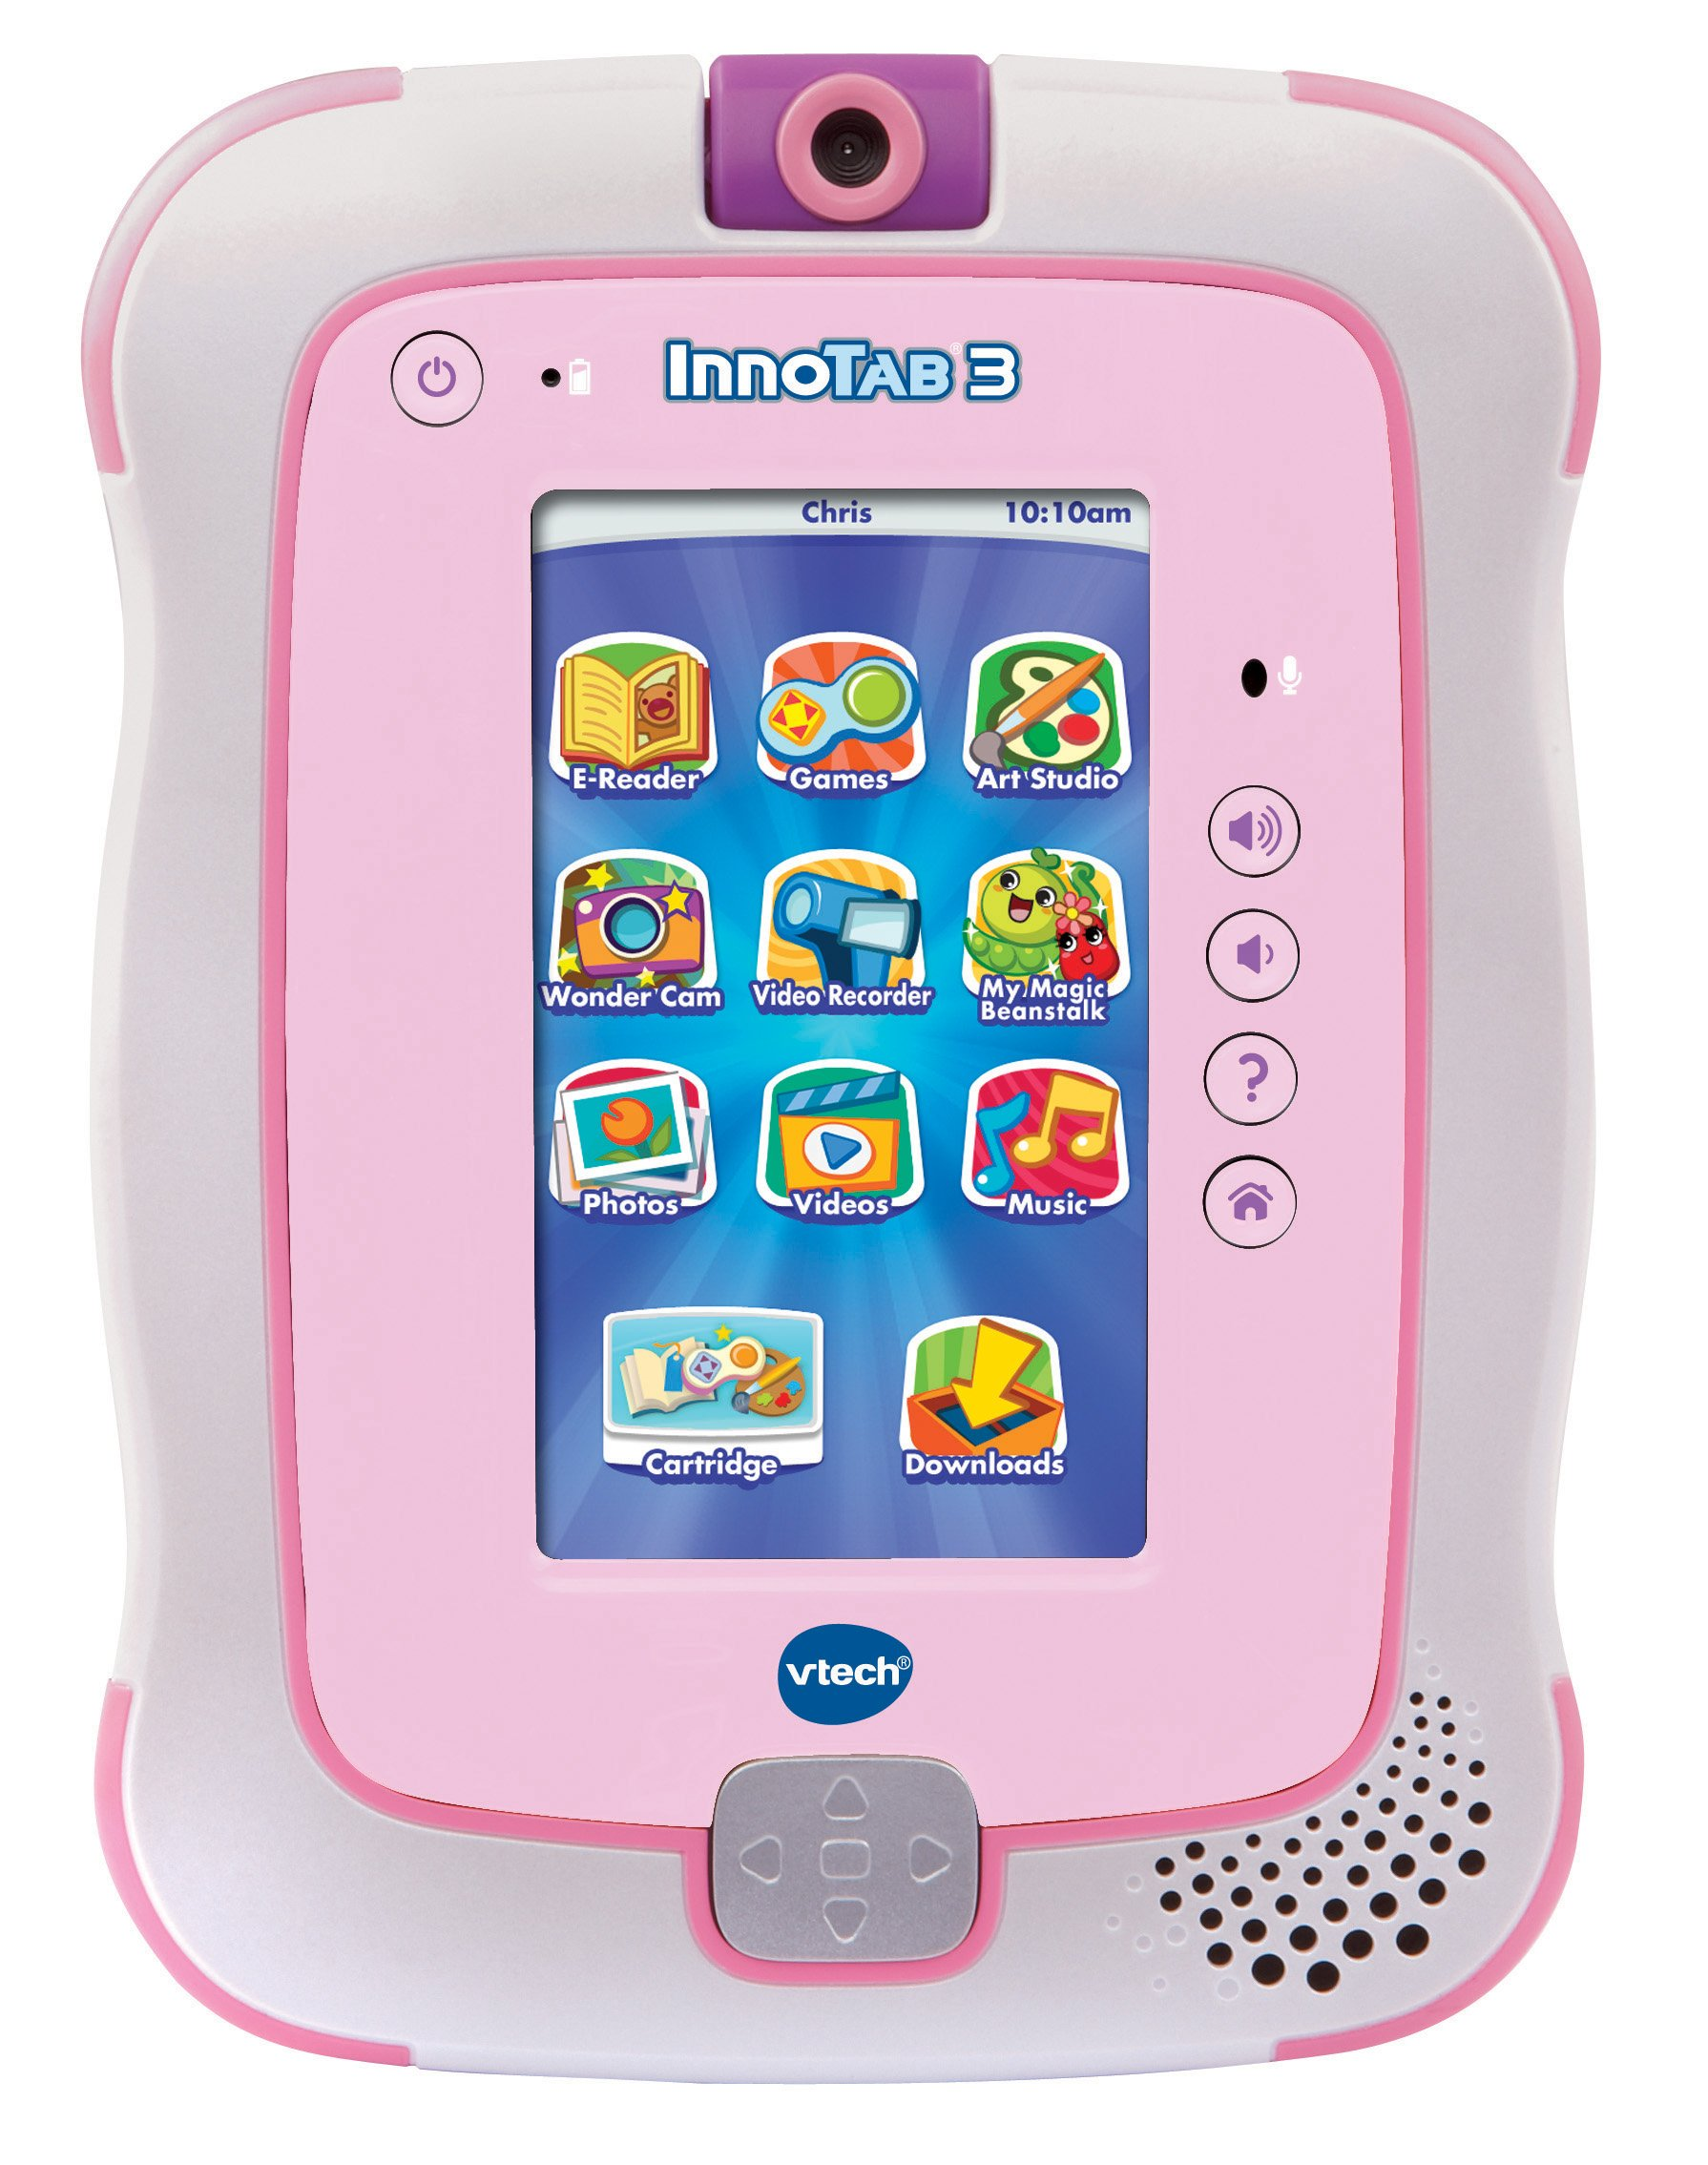 VTech InnoTab 3 The Learning App Tablet, Pink by VTech (Image #1)